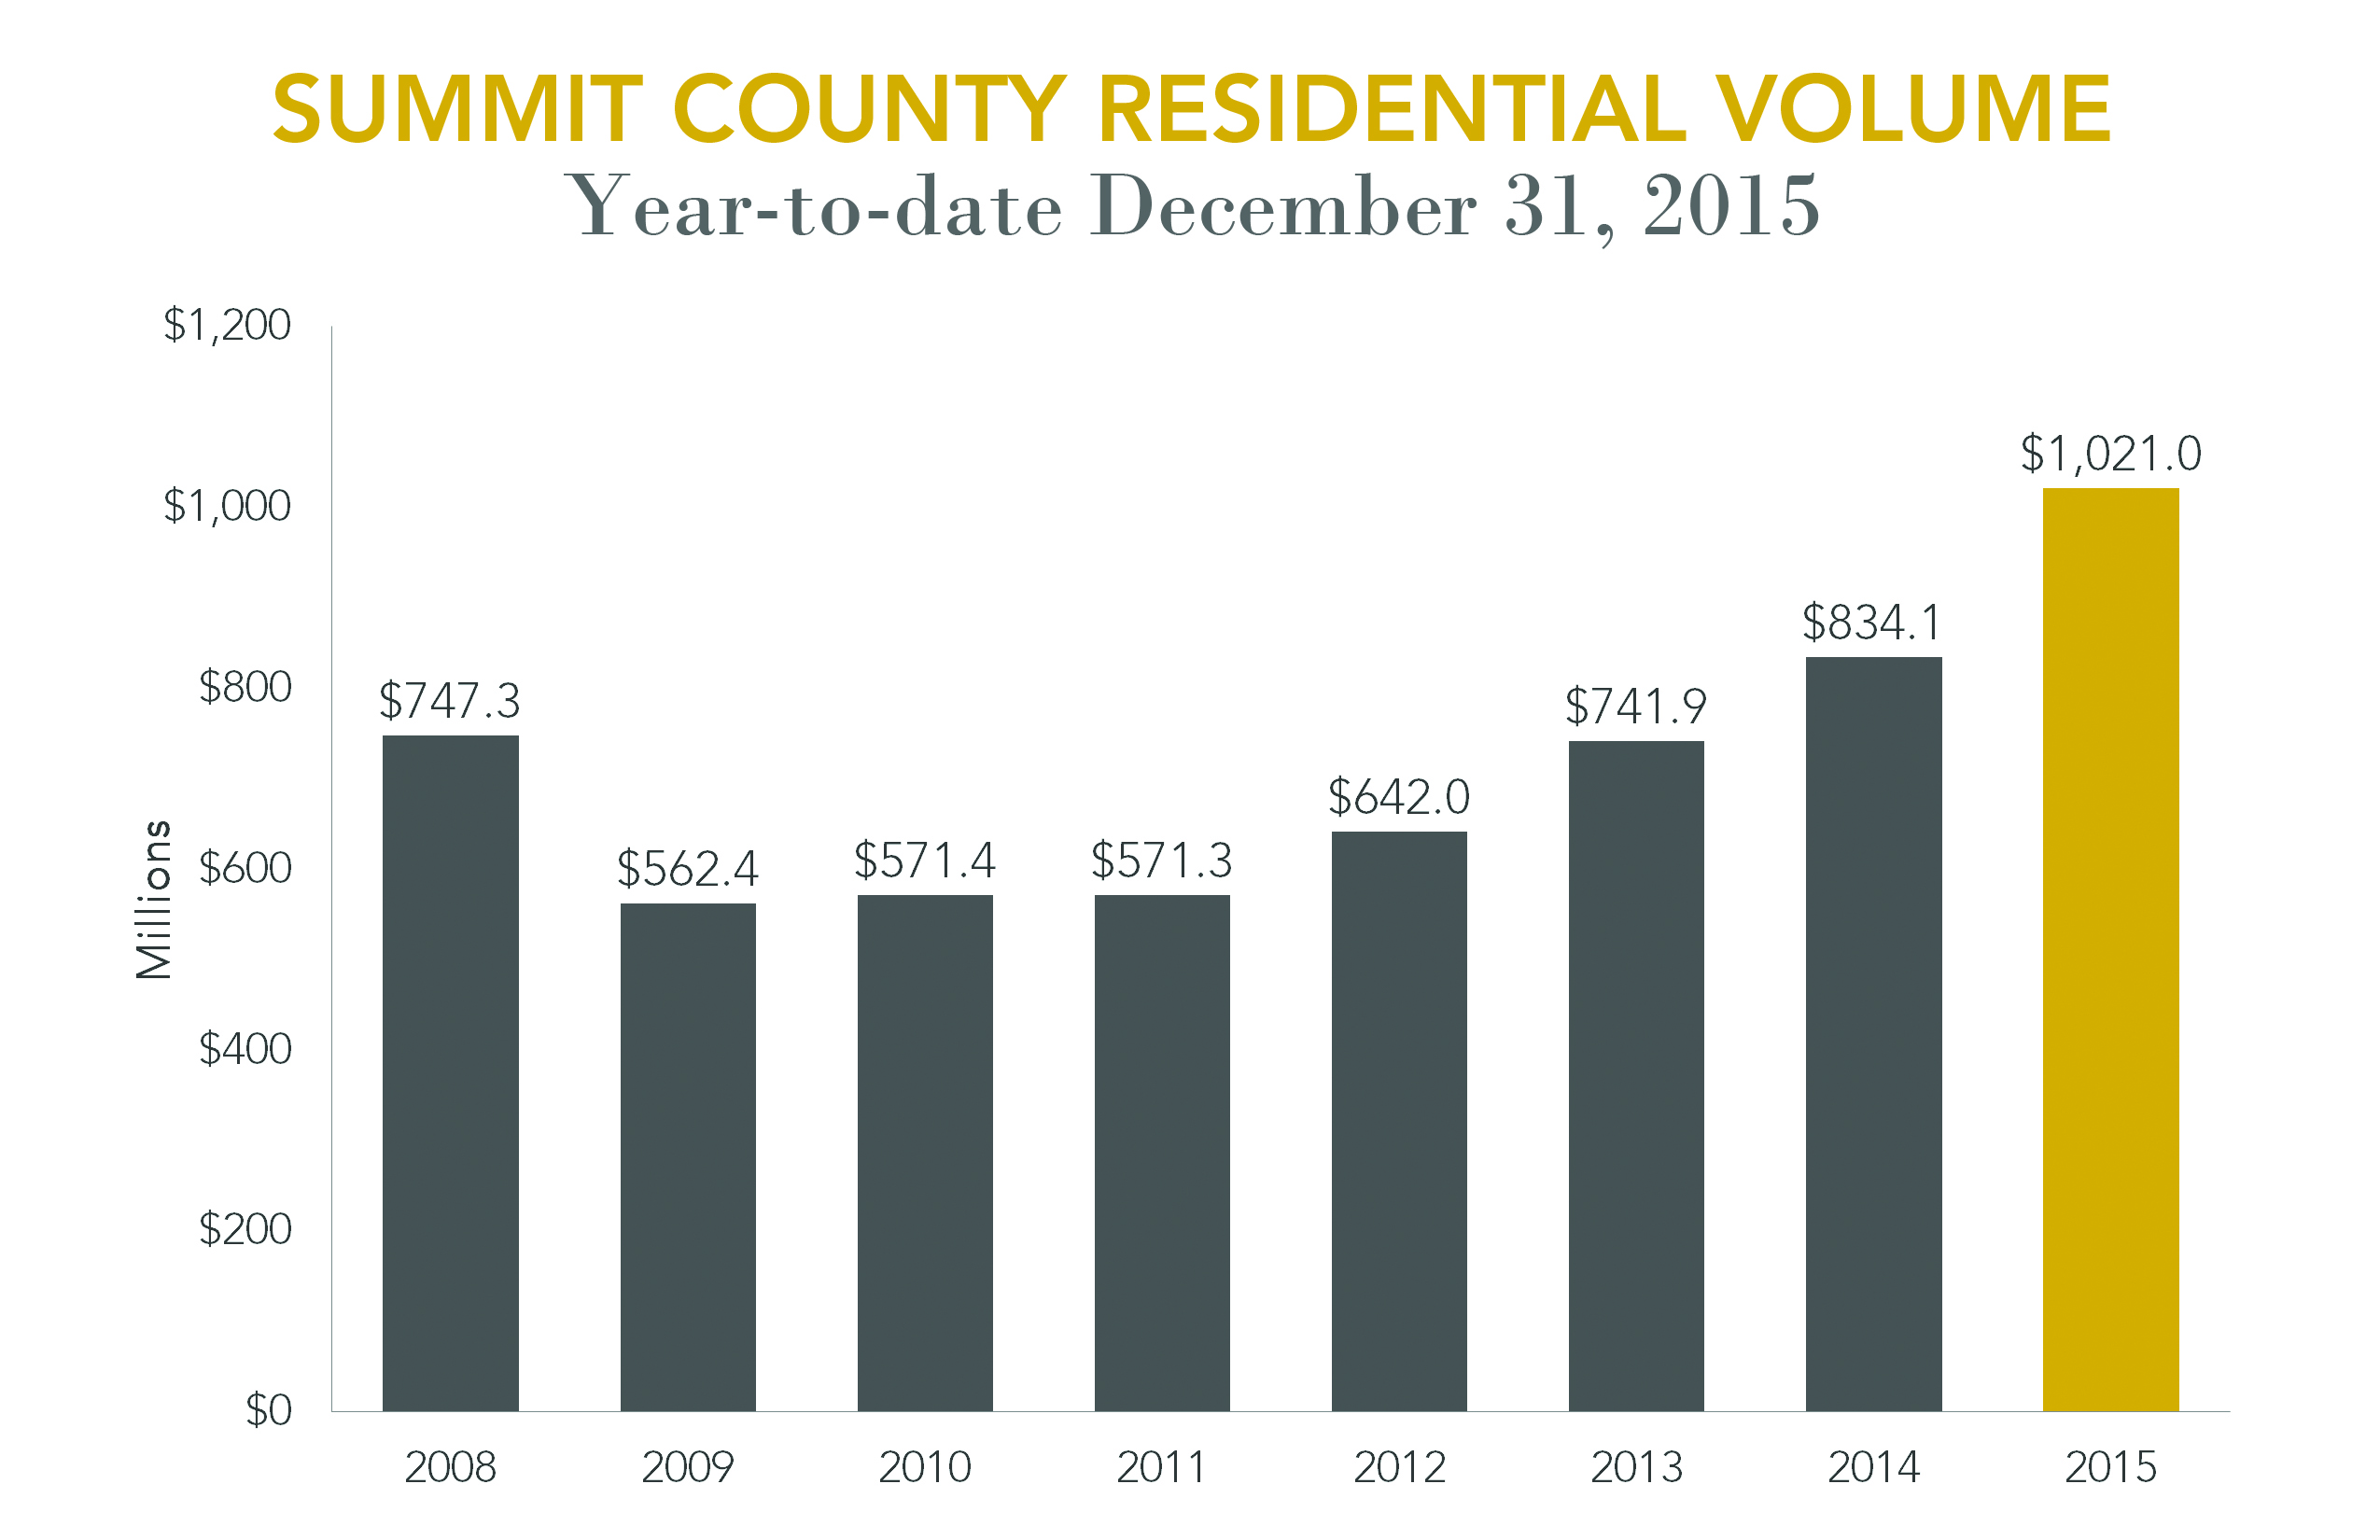 Summit County Residential Volume